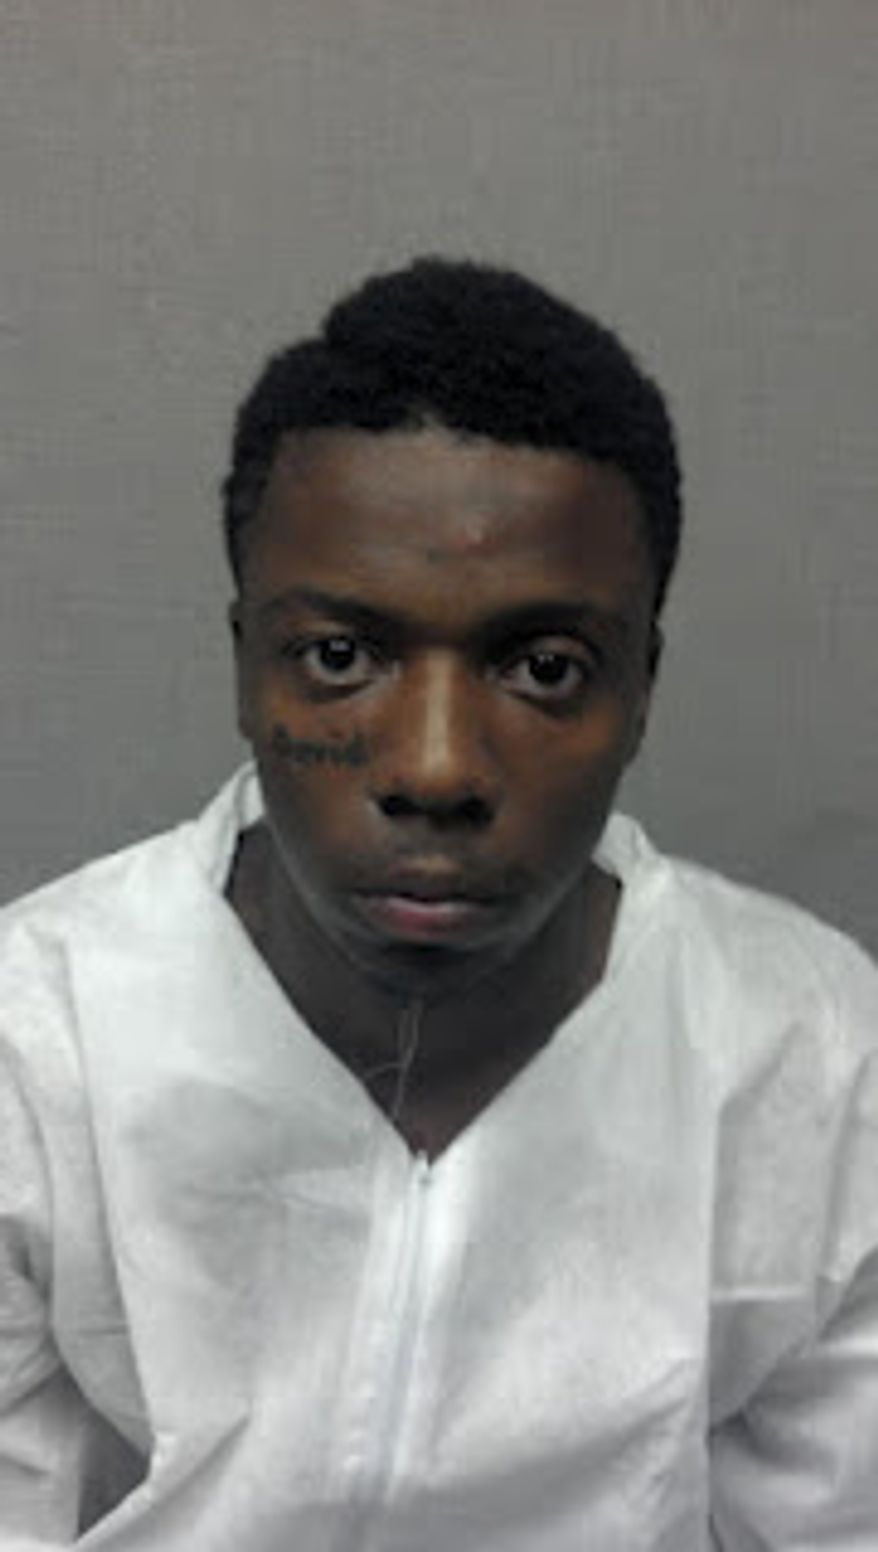 Travis Everett Hoskins. Photo from the Prince George's County Police Department.